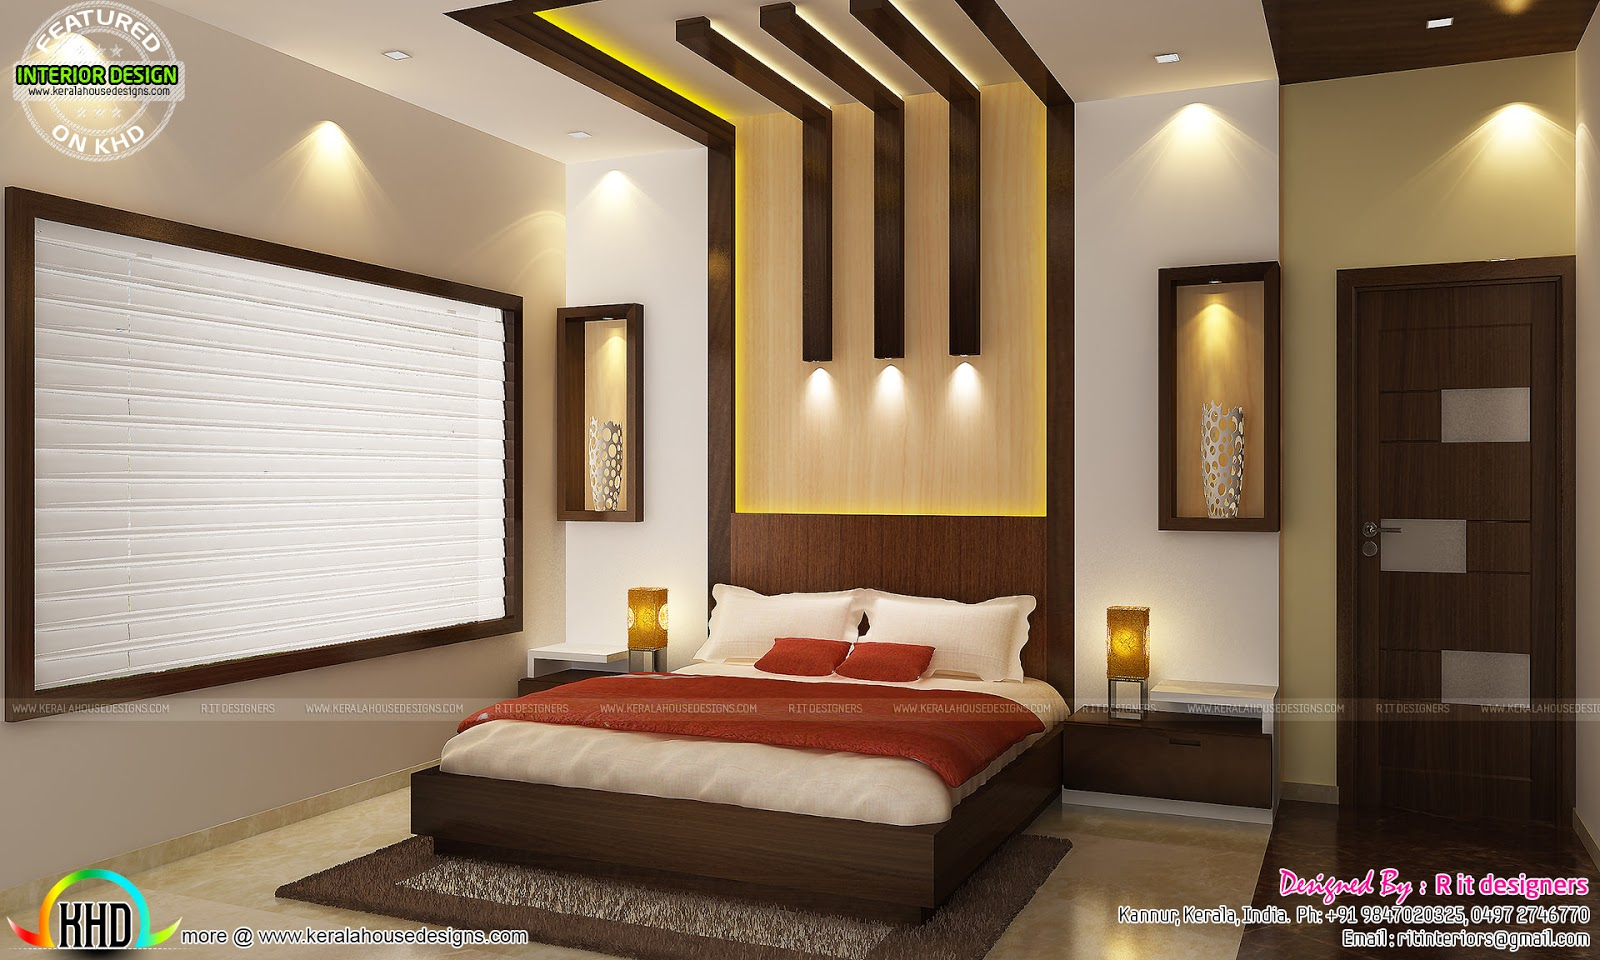 Kitchen living bedroom dining interior decor kerala for Interior designs com